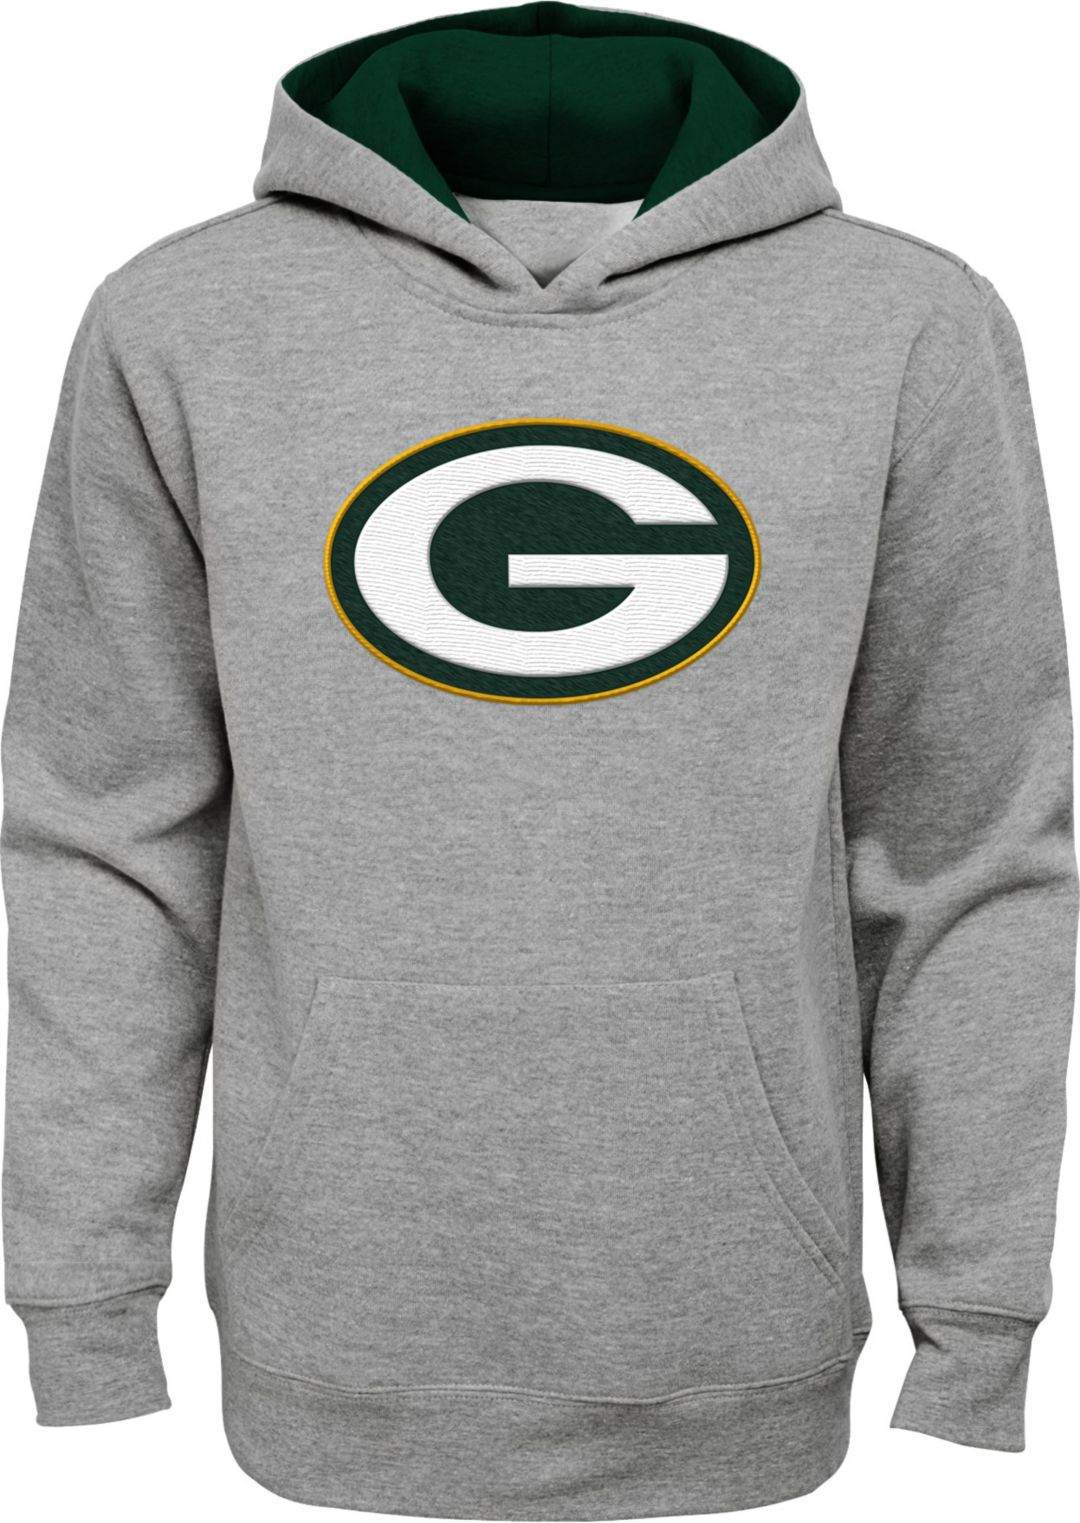 official photos 8025f 64049 NFL Team Apparel Youth Green Bay Packers Prime Grey Pullover Hoodie